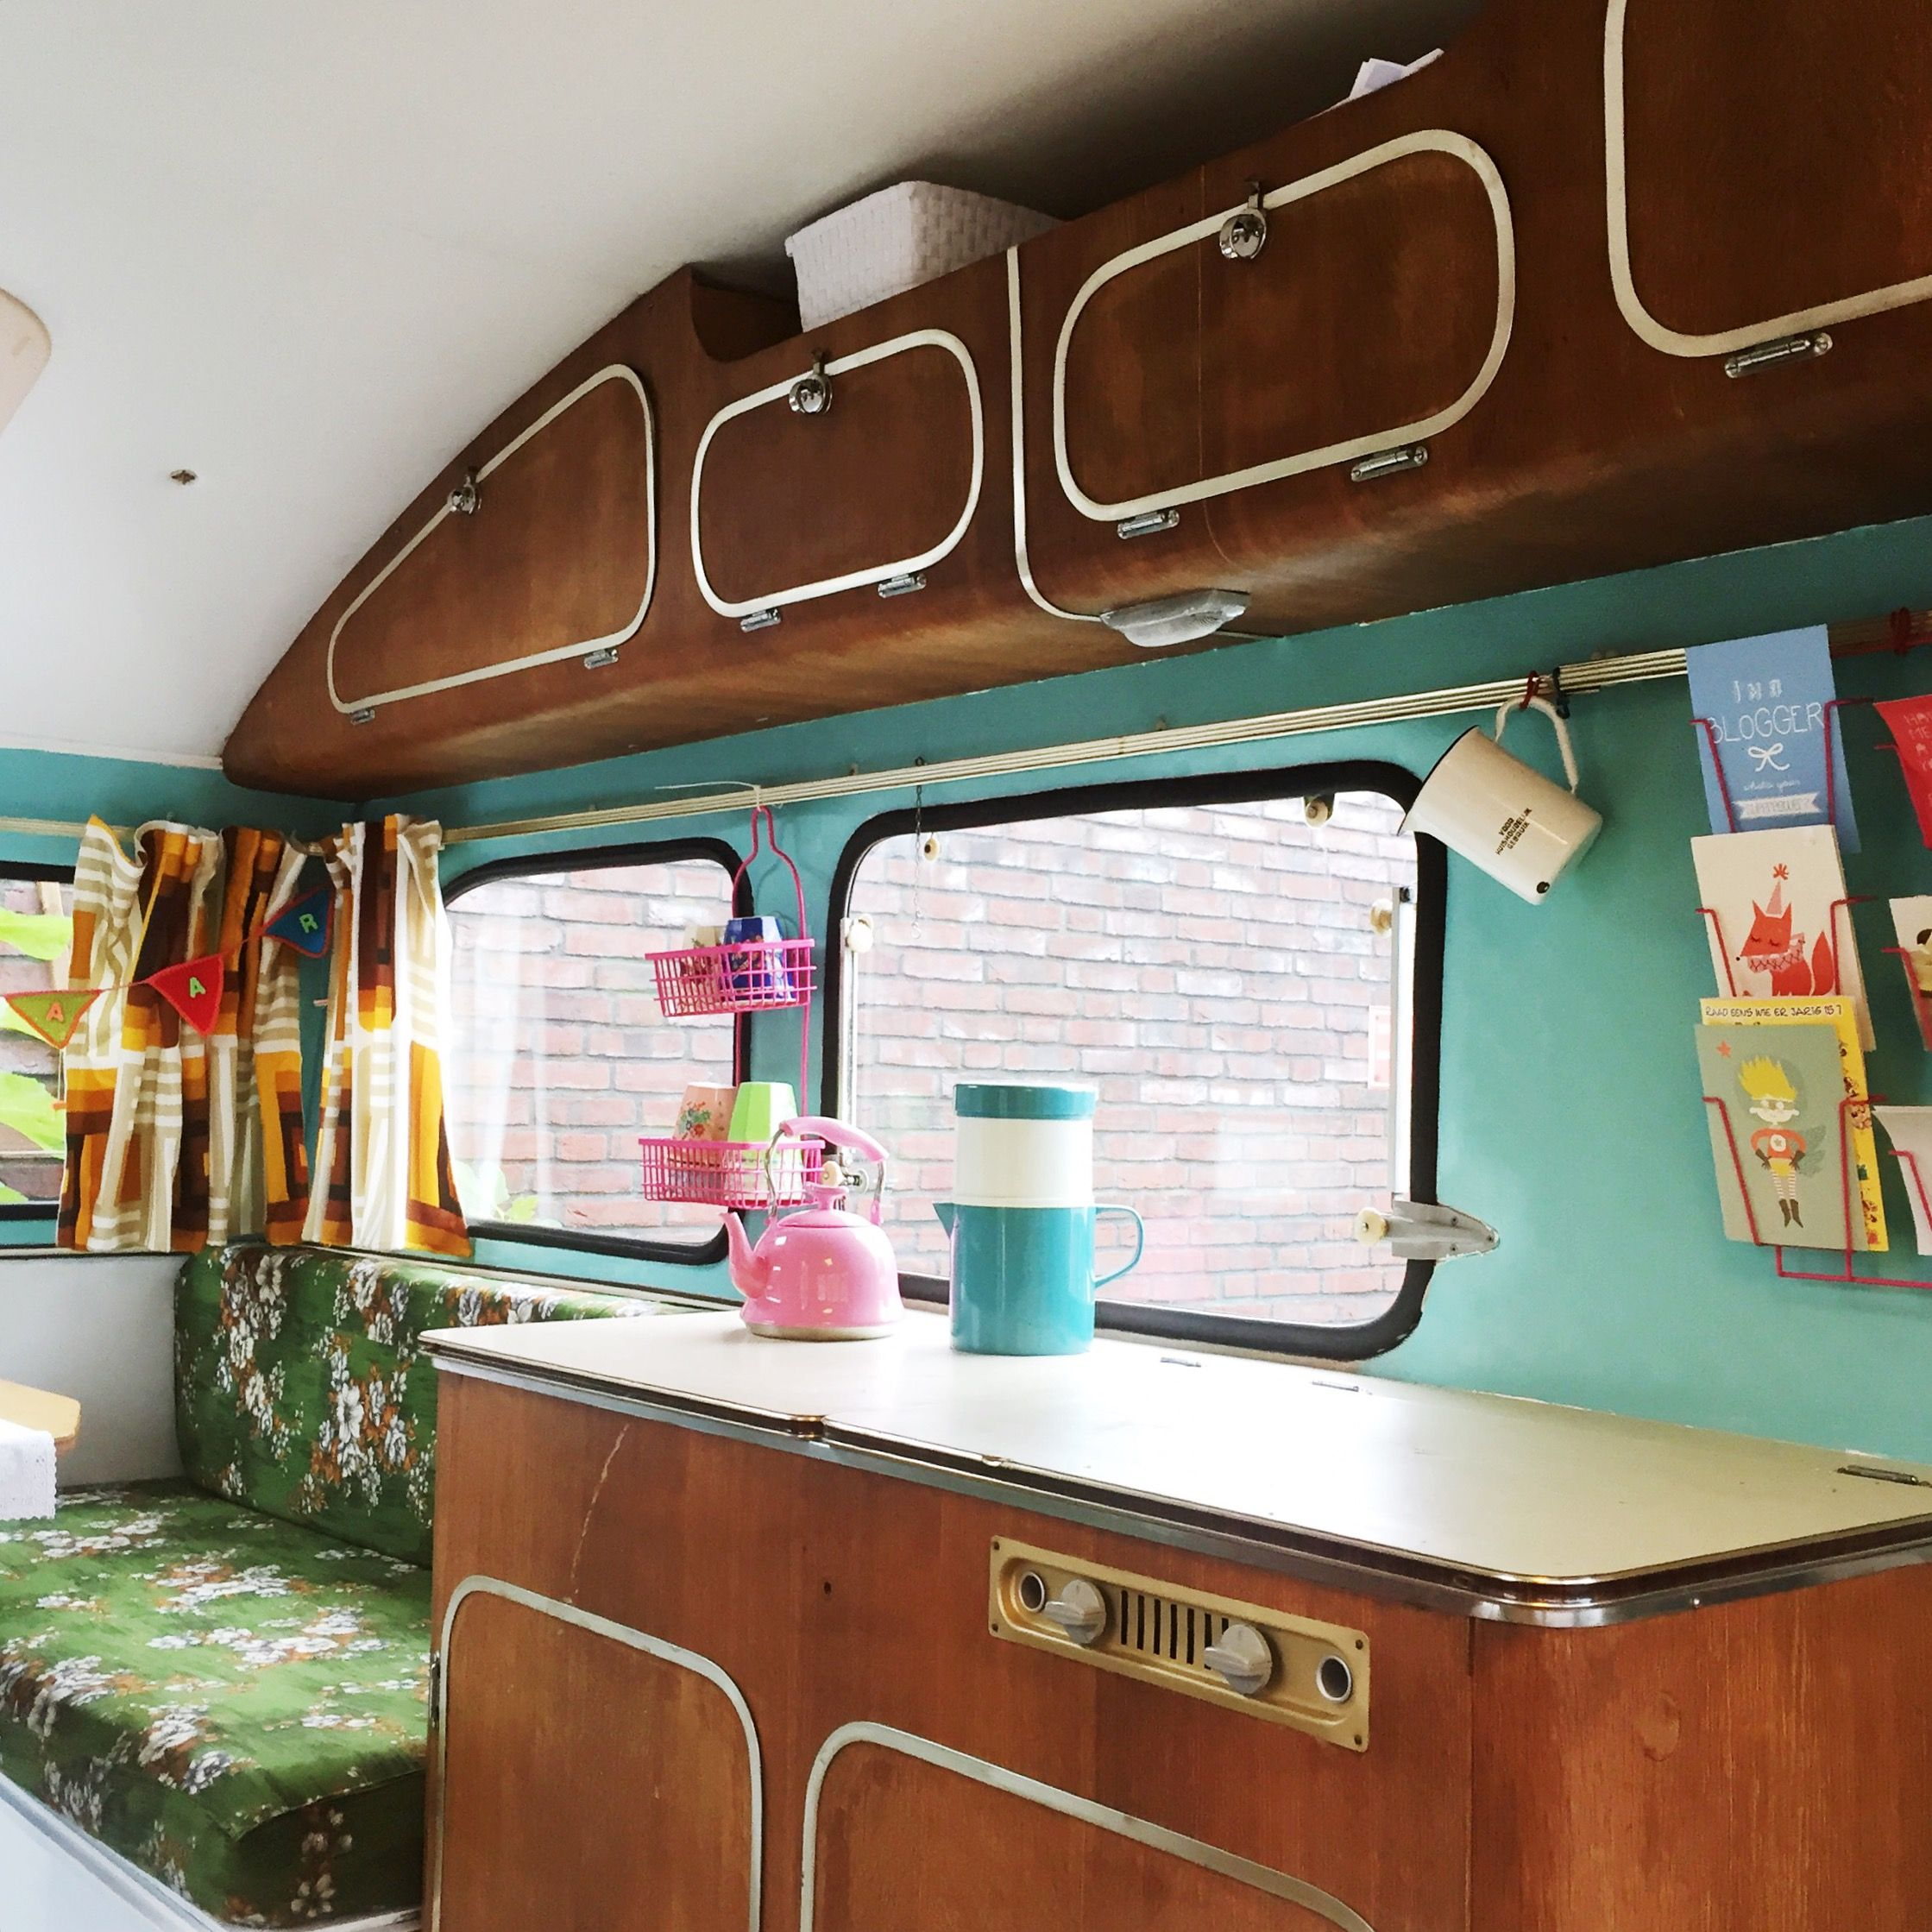 constructam condor 1968 caravanity mycoolcaravan great way to go vintage pinterest. Black Bedroom Furniture Sets. Home Design Ideas